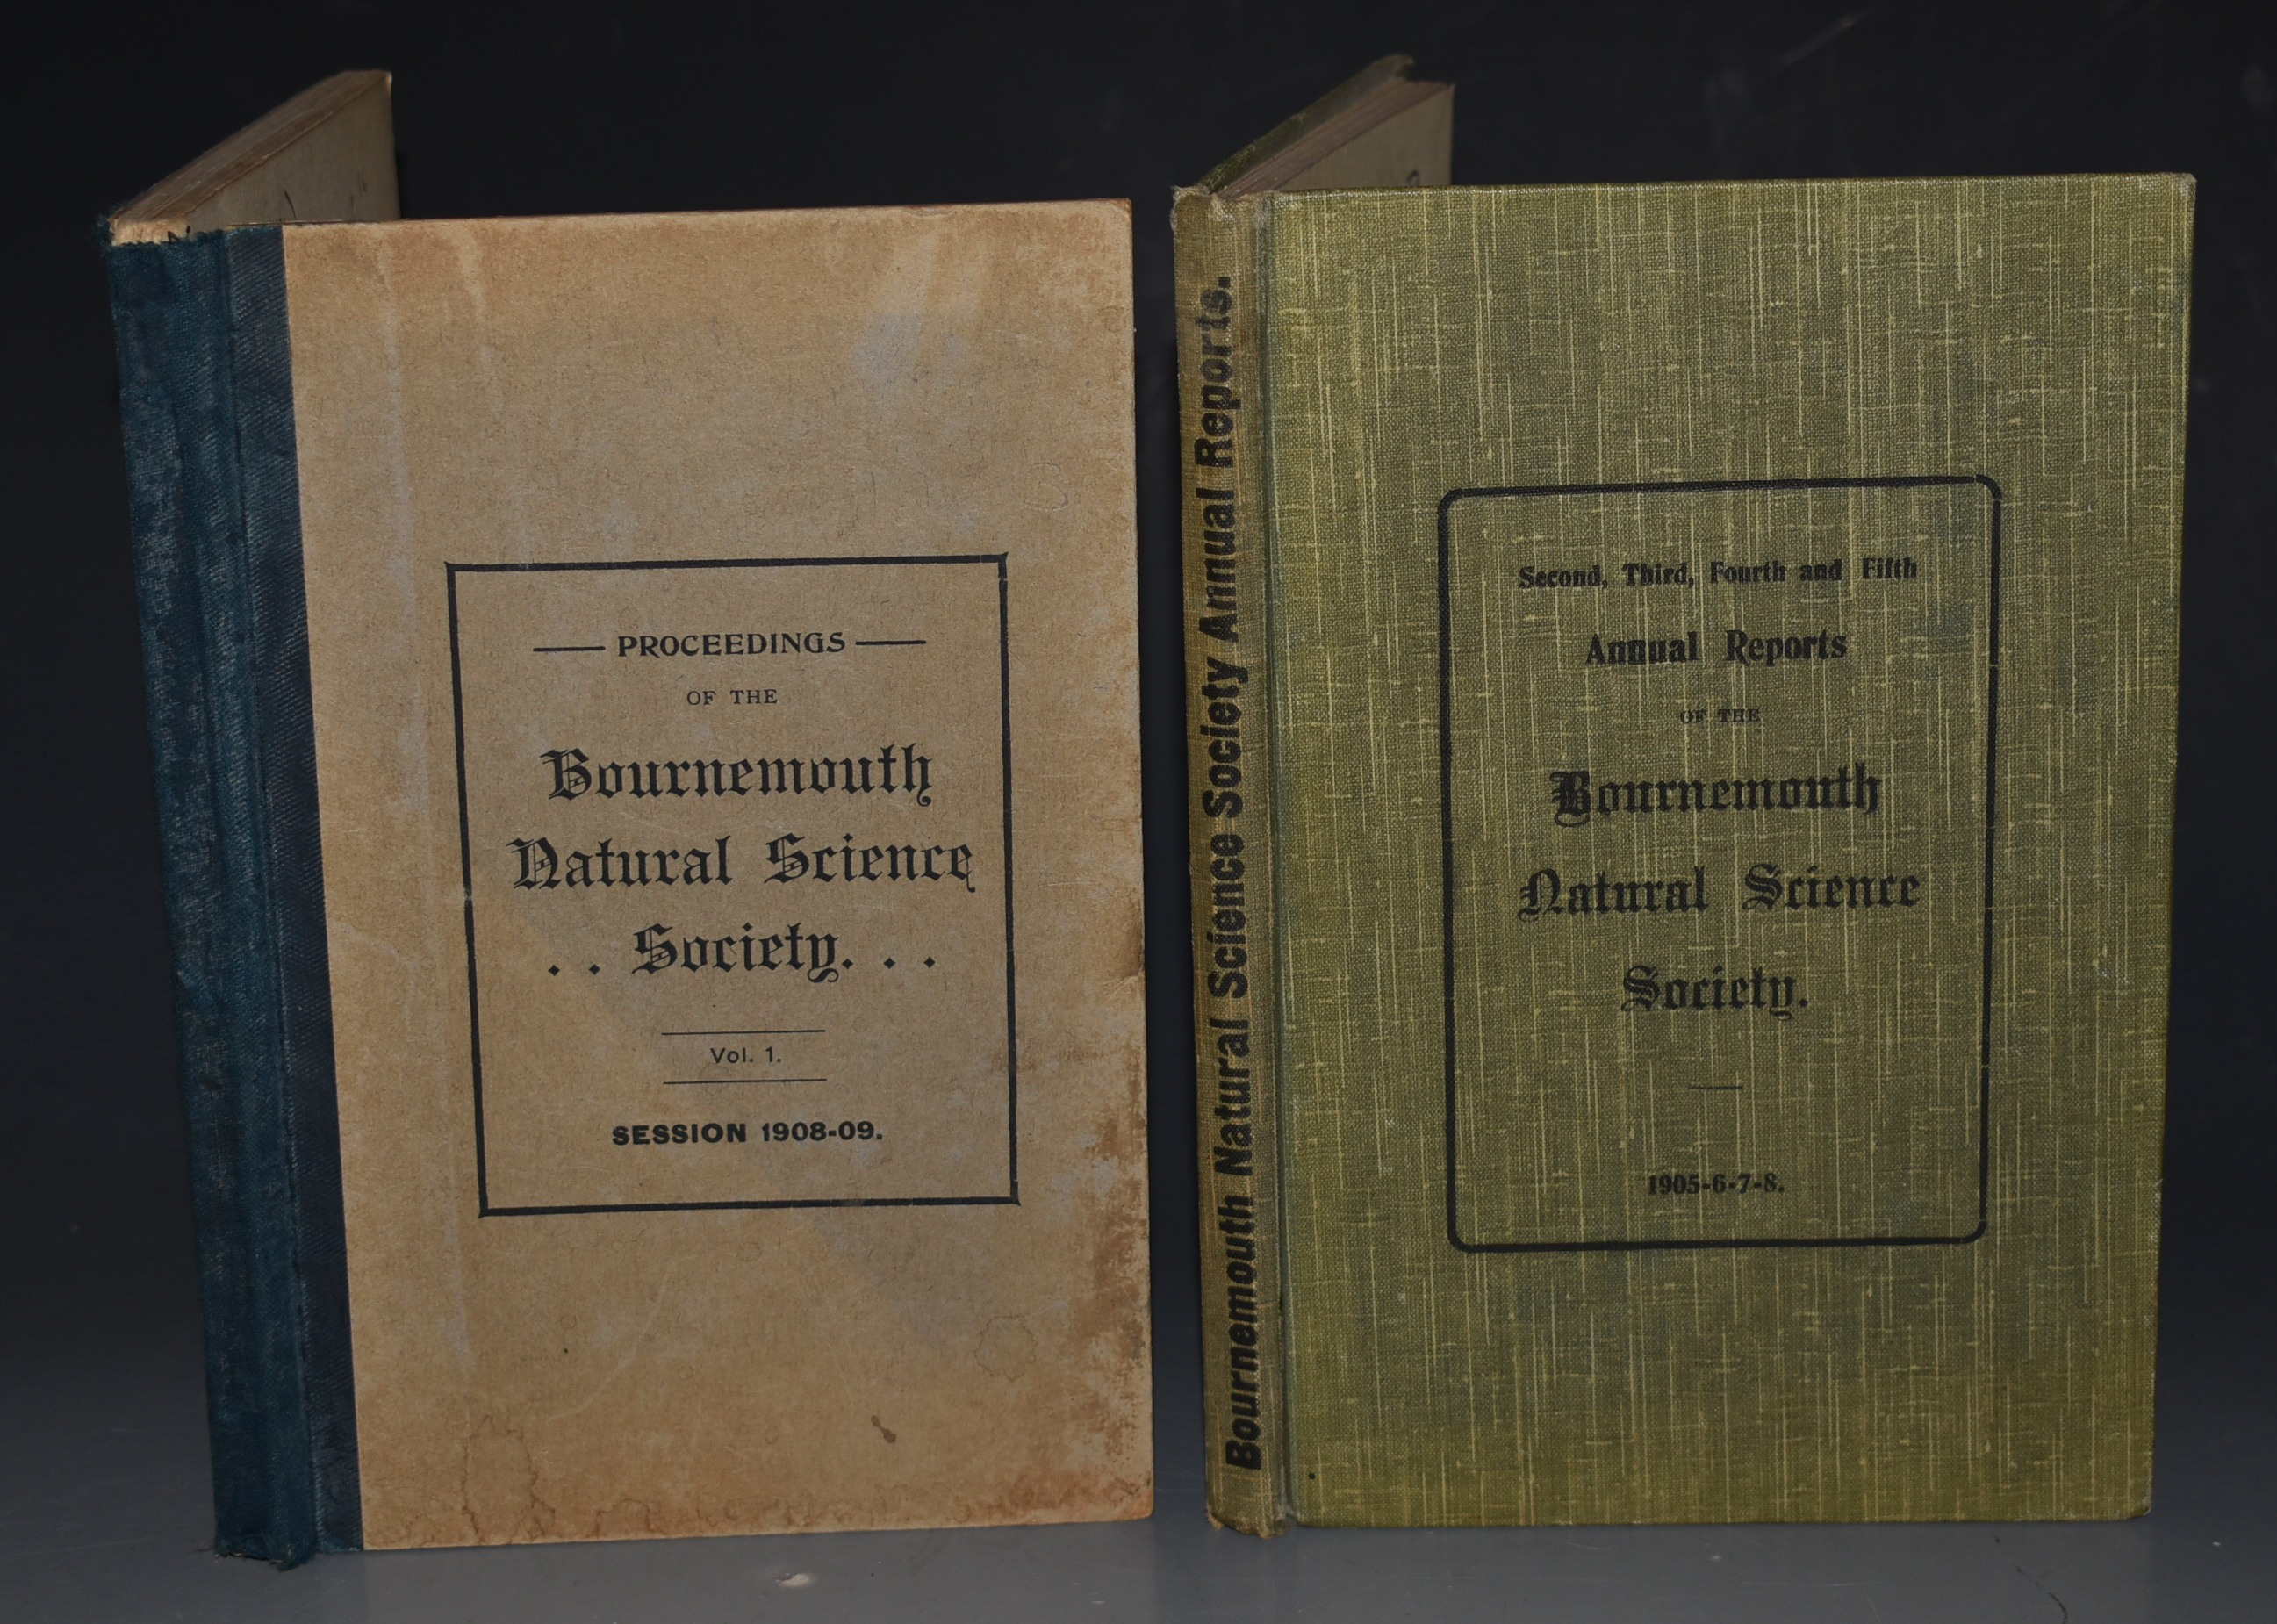 Image for Annual Reports of the Bournemouth Natural Science Society. Two Volumes: Second, Third, Fourth and Fifth Annual Reports 1905,6,7,8. AND Volume 1, Session 1908-9 Proceedings.